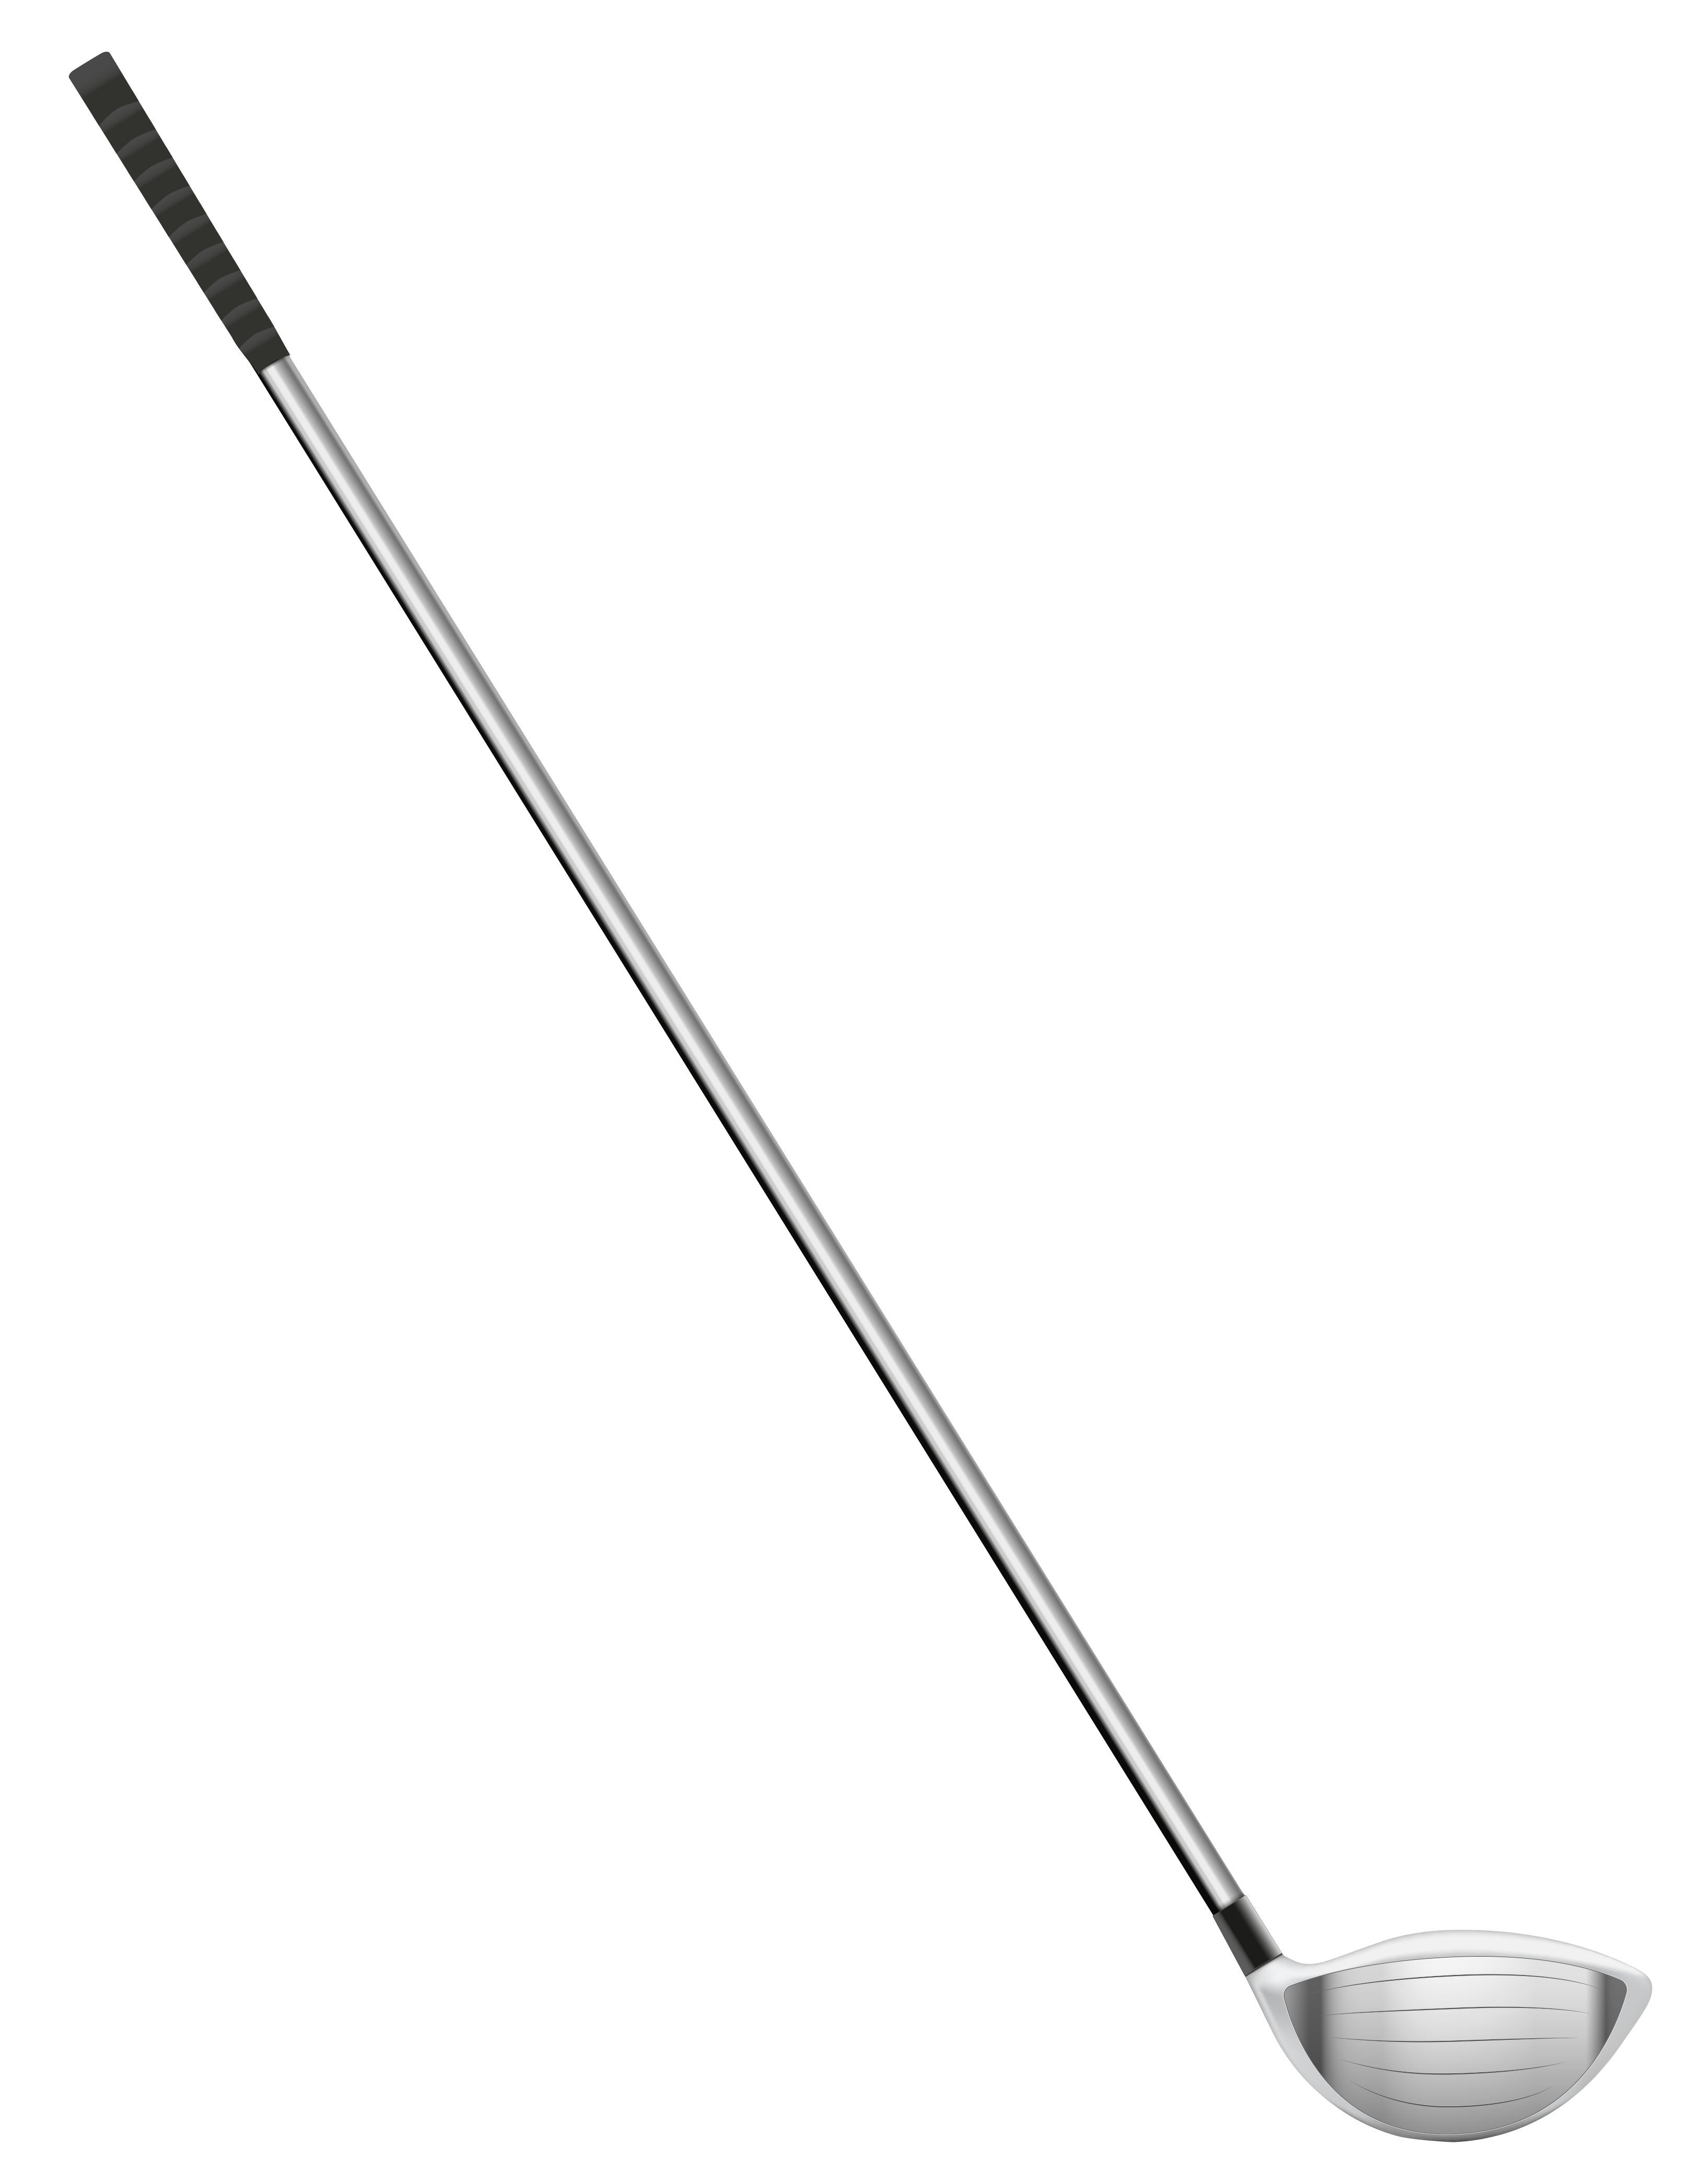 Club stick png picture. Winter clipart golf